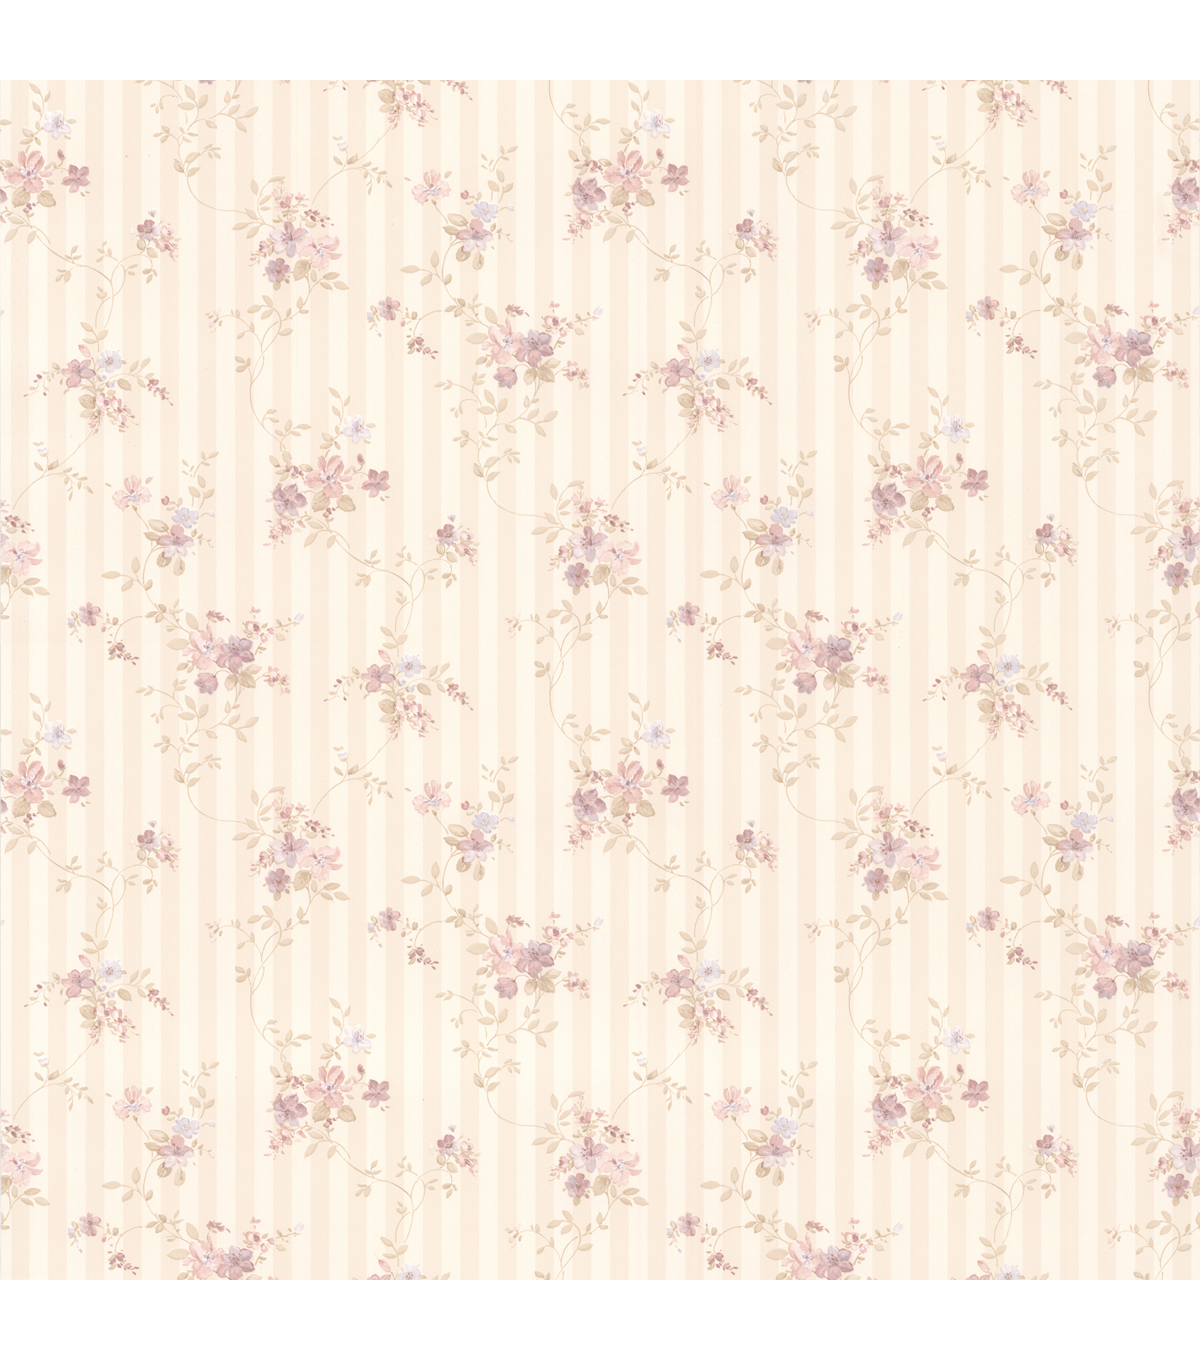 Delilah Mauve Floral Stripe Wallpaper